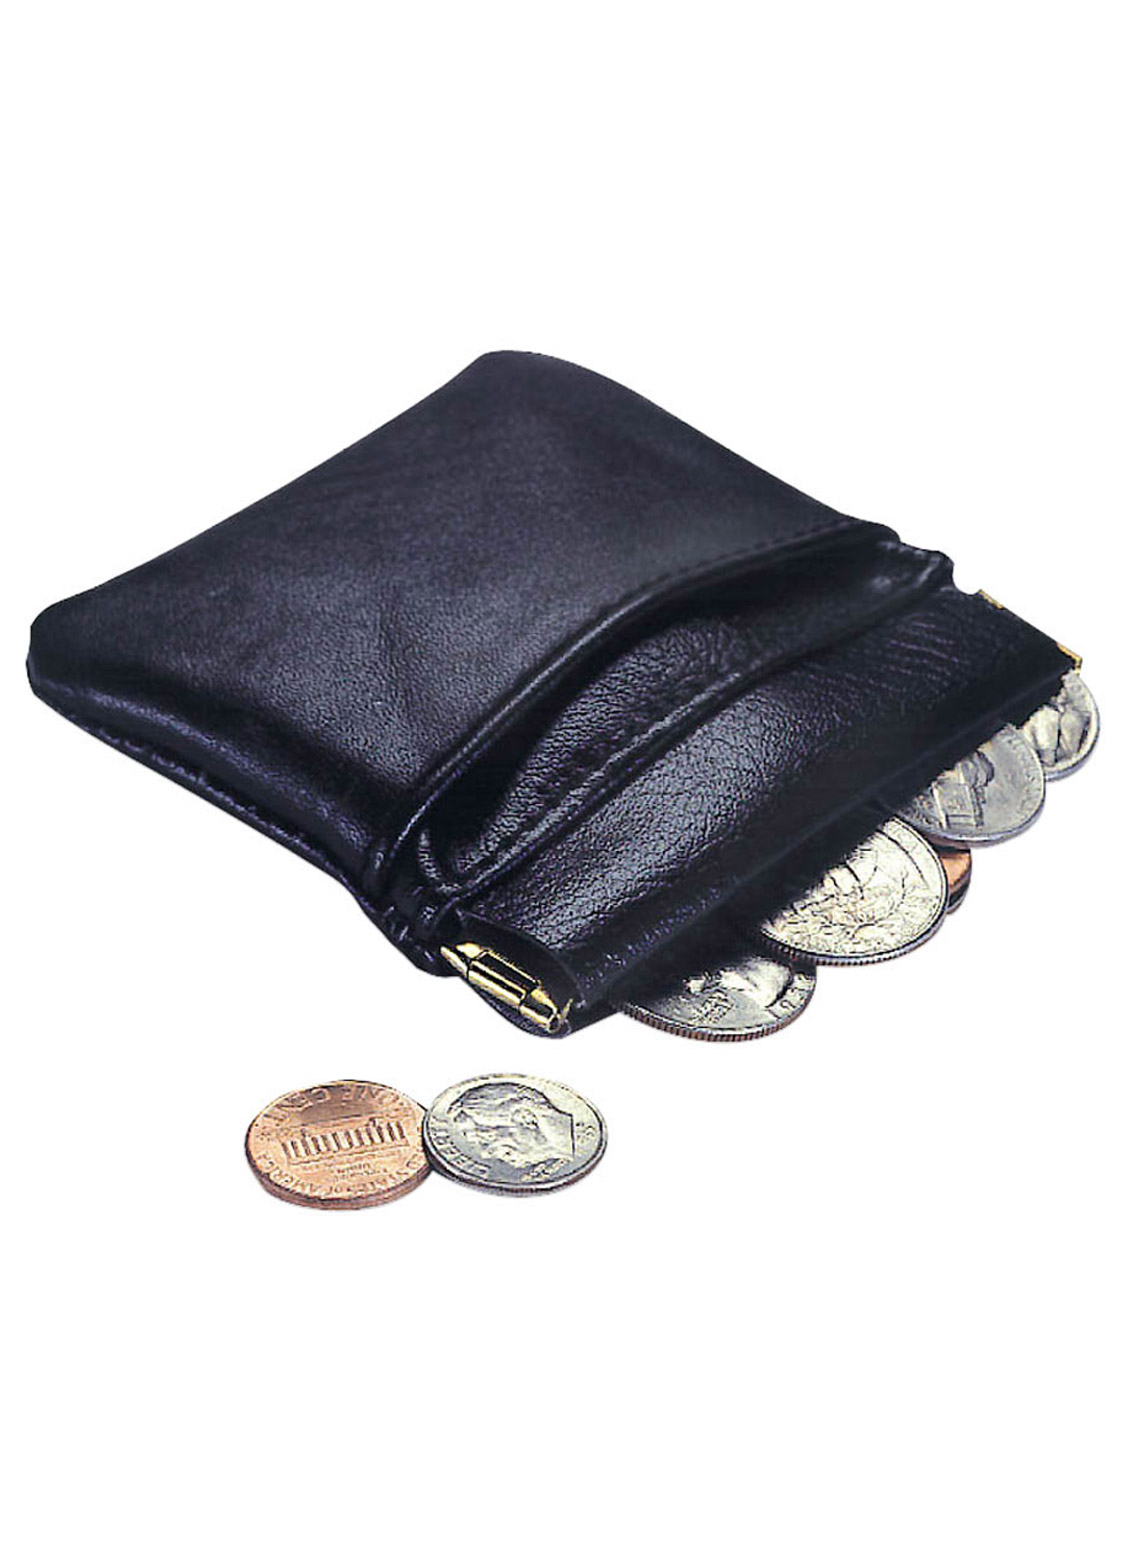 000a4a66 Coin Purse, Black Genuine Leather Small Squeeze-Top Coin Pouch